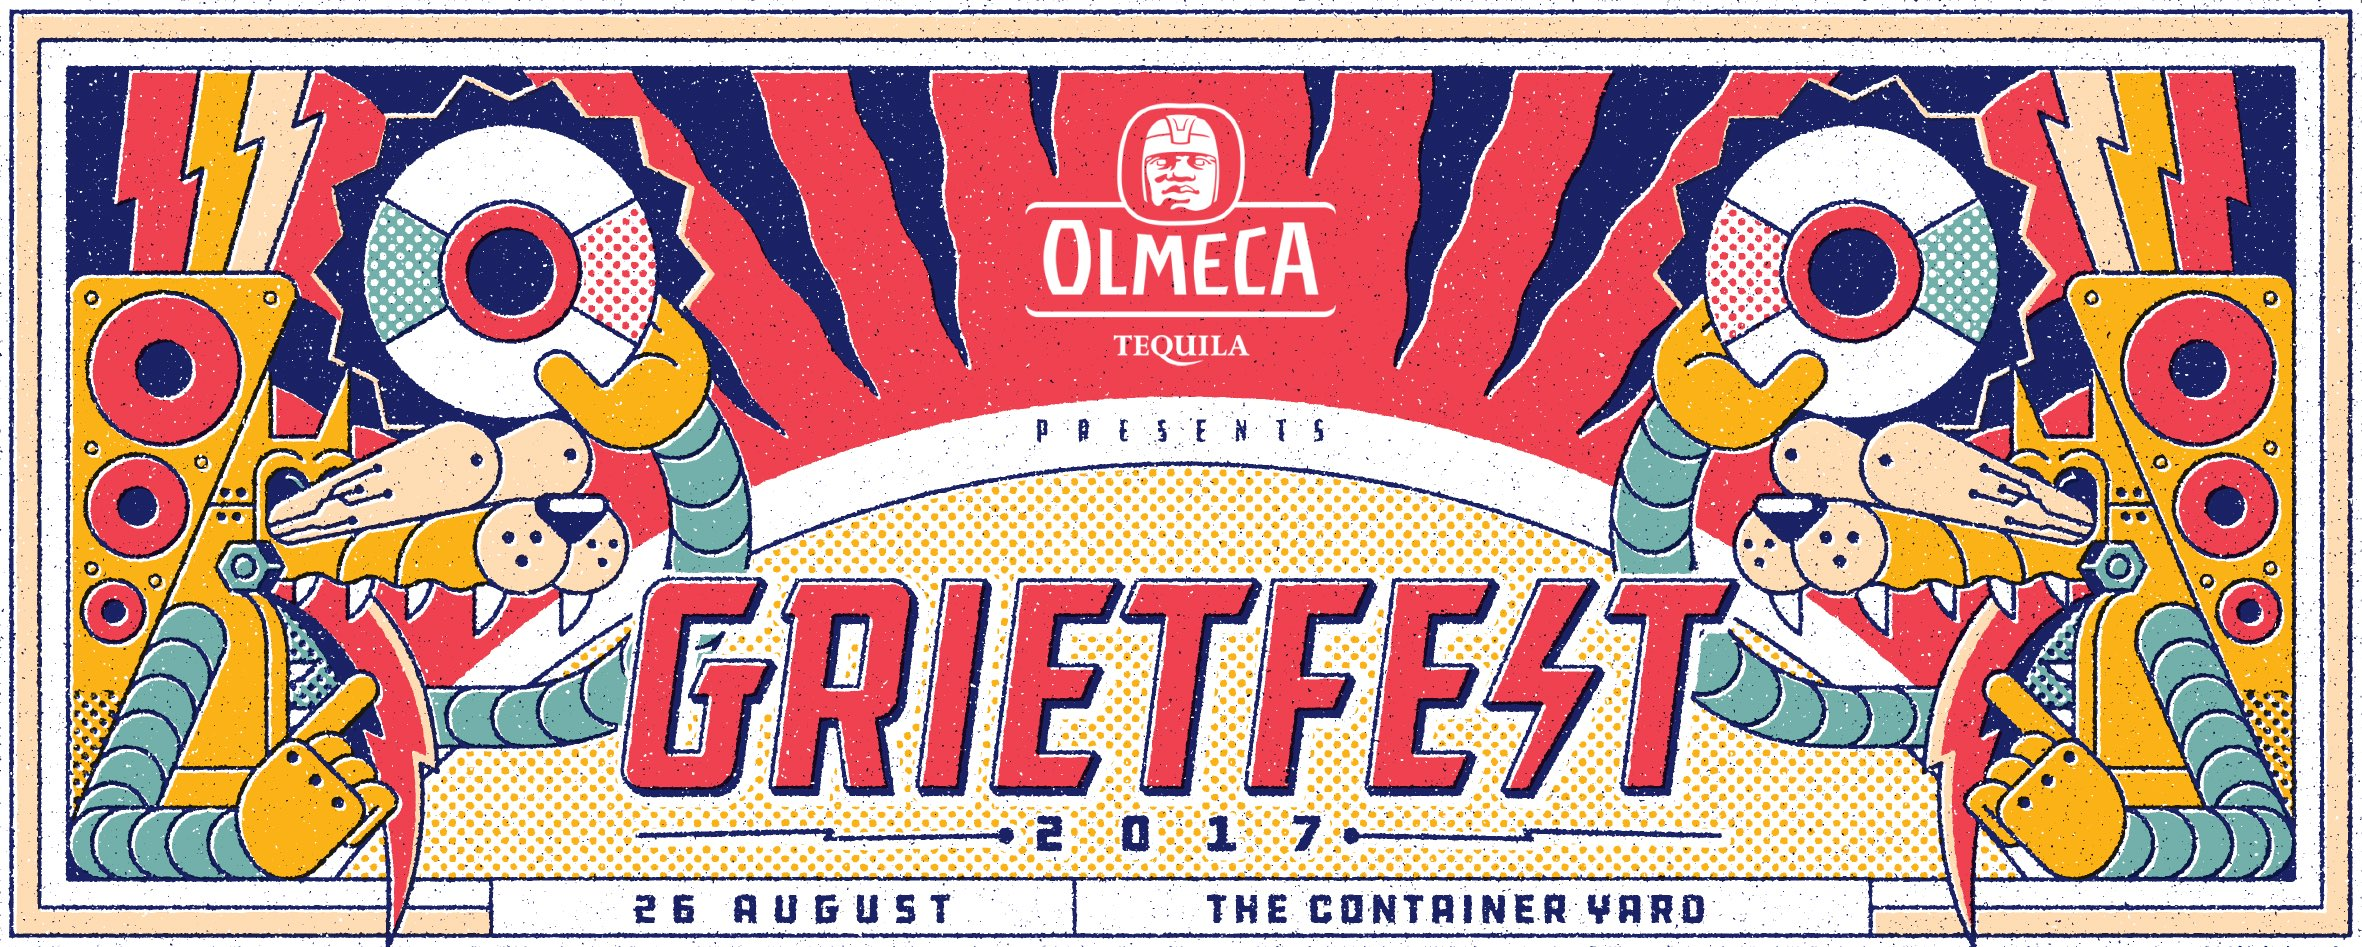 Get the Grietfest 2017 Line-Up and Times here